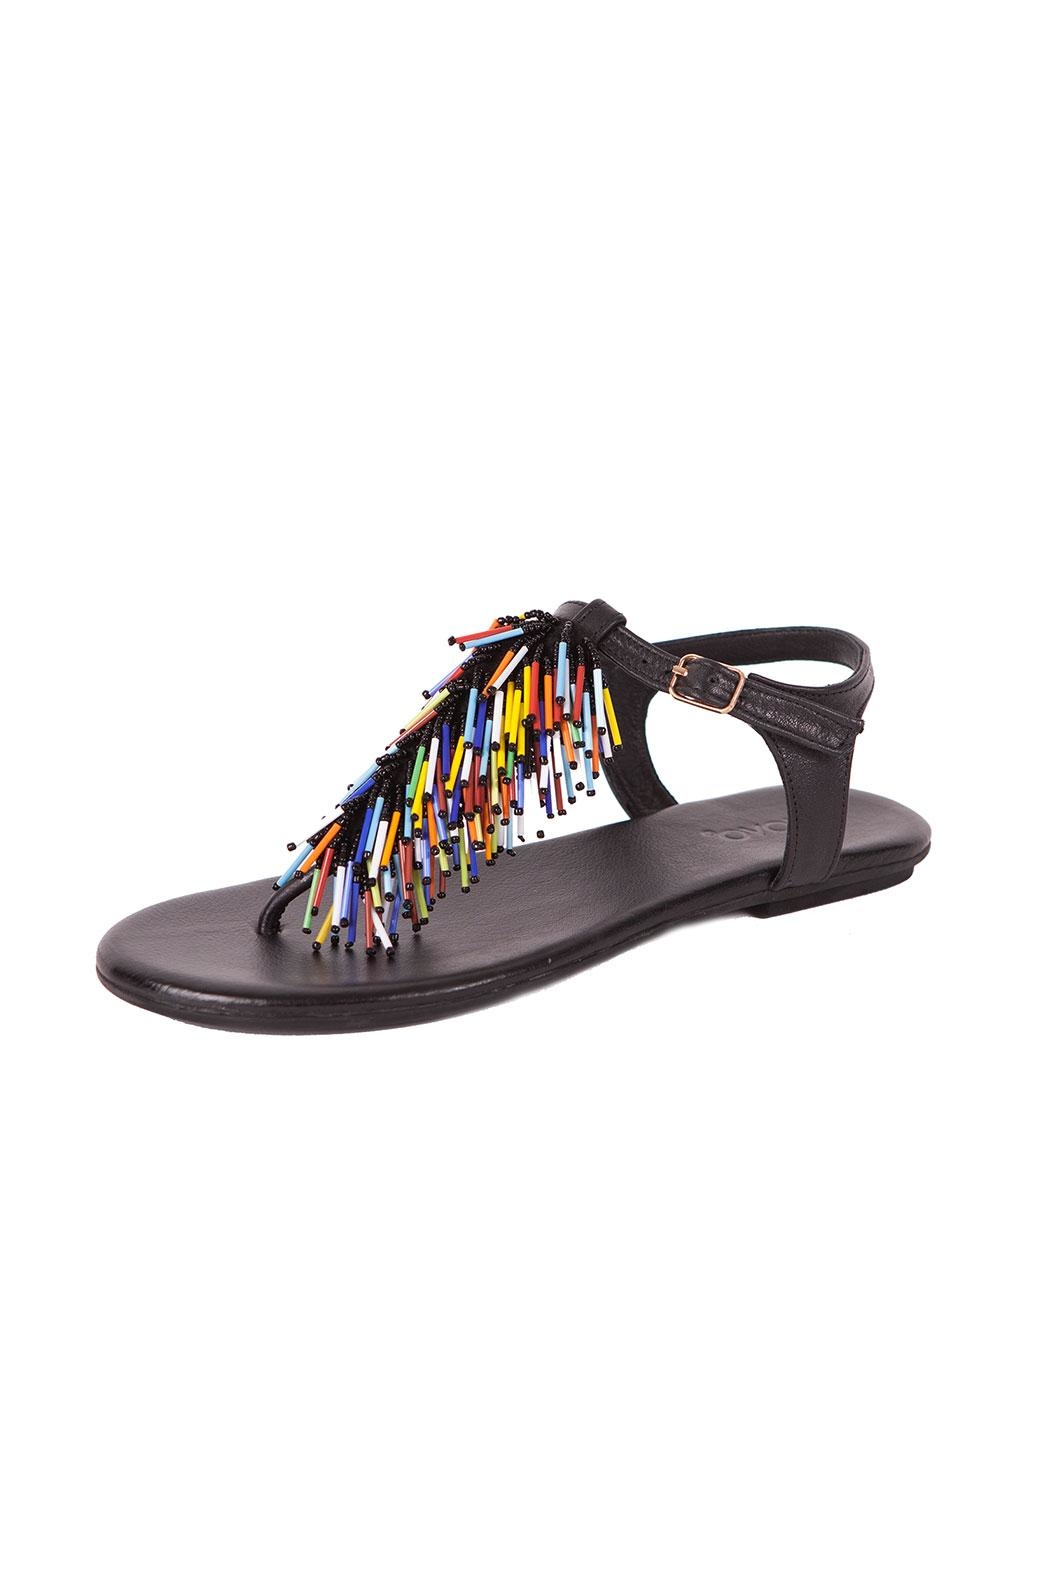 Inuovo Black Leather Sandals - Front Cropped Image